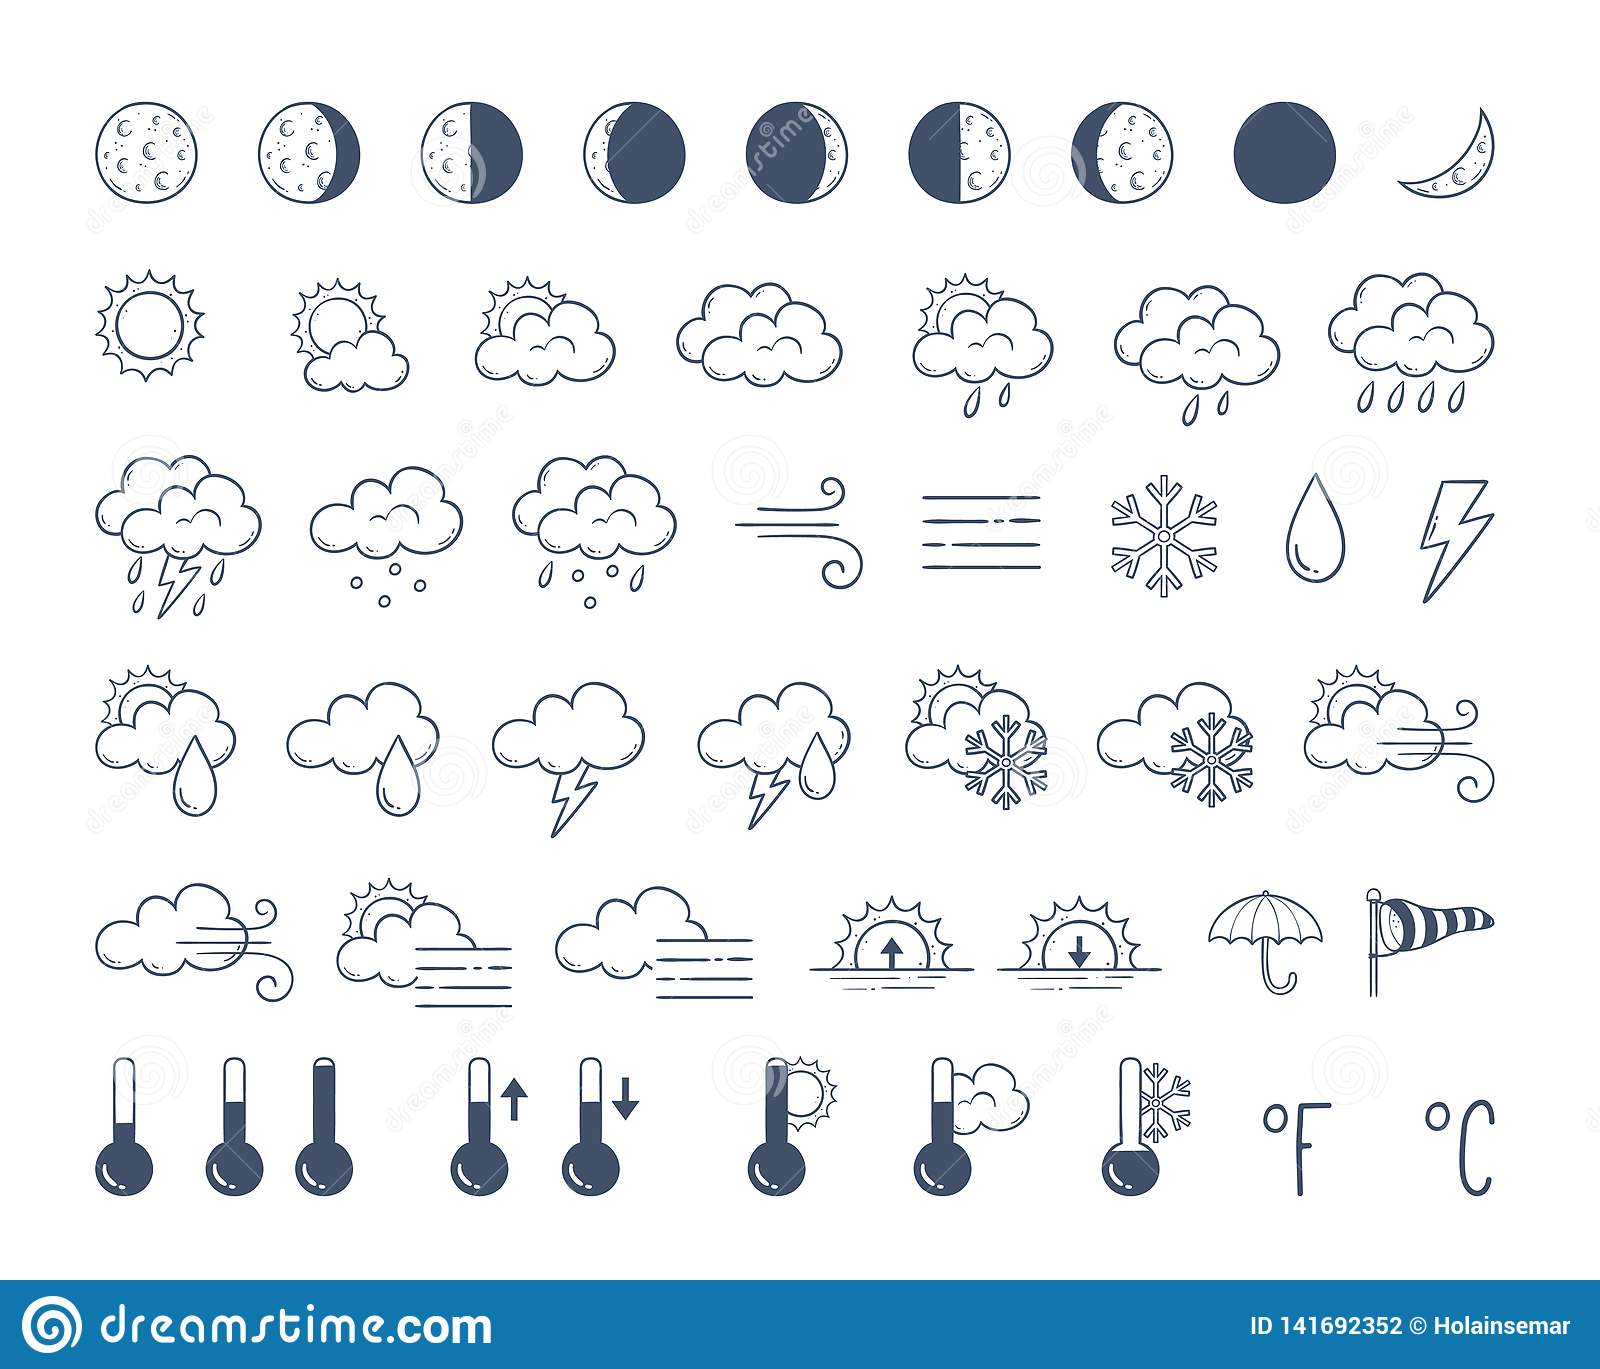 Doodle Weather Icons Pack  Hand Drawn Icon Set  Stock Vector